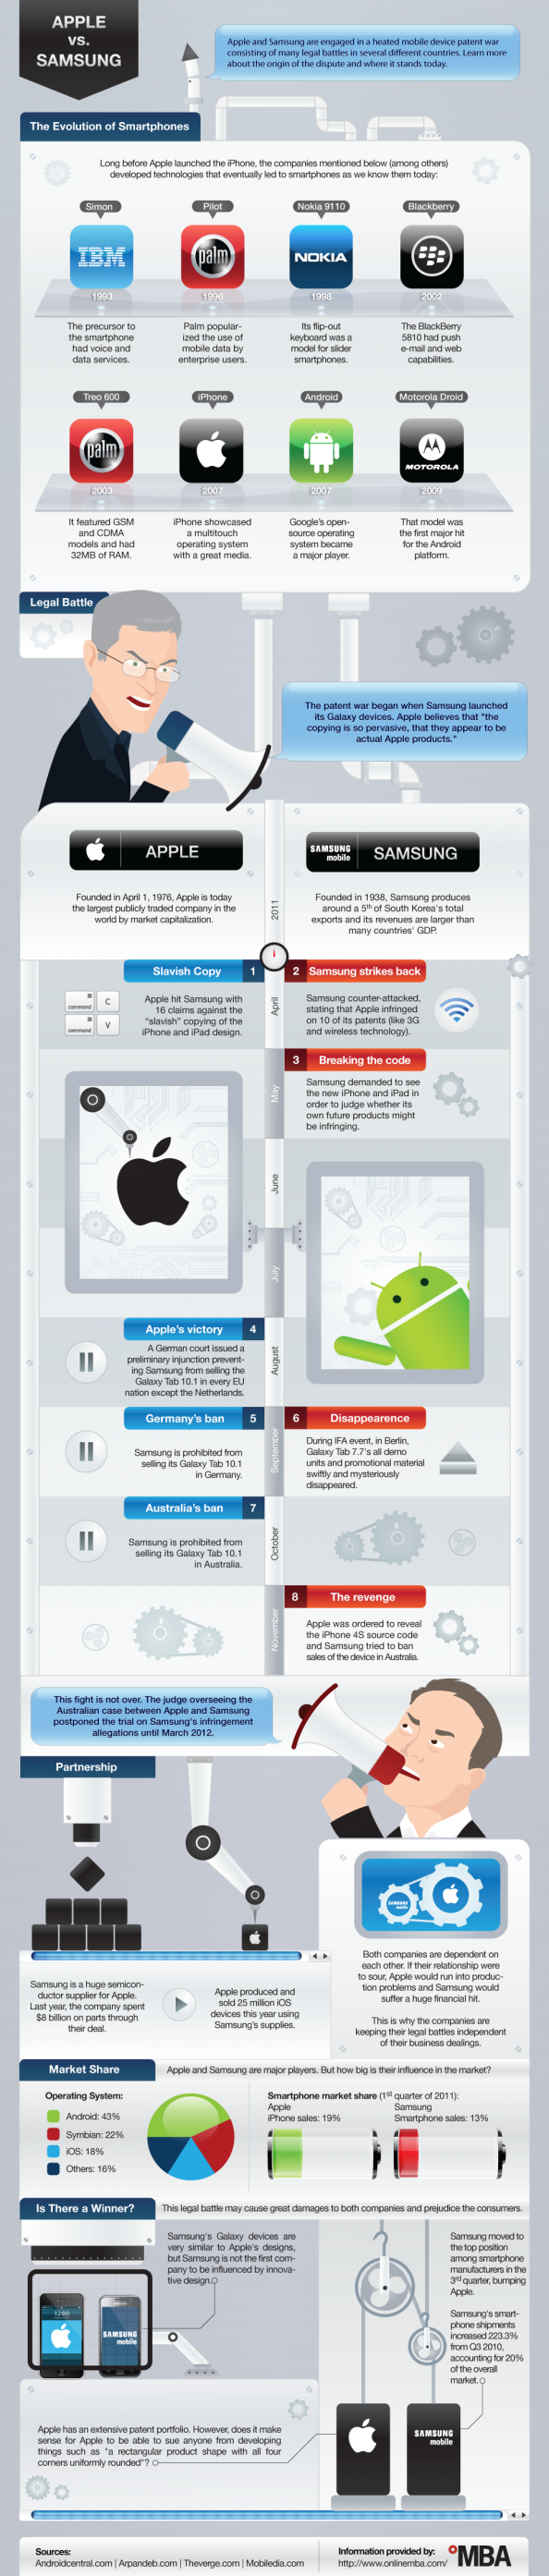 Apple vs. Samsung: The Patent Wars, Explained Infographic